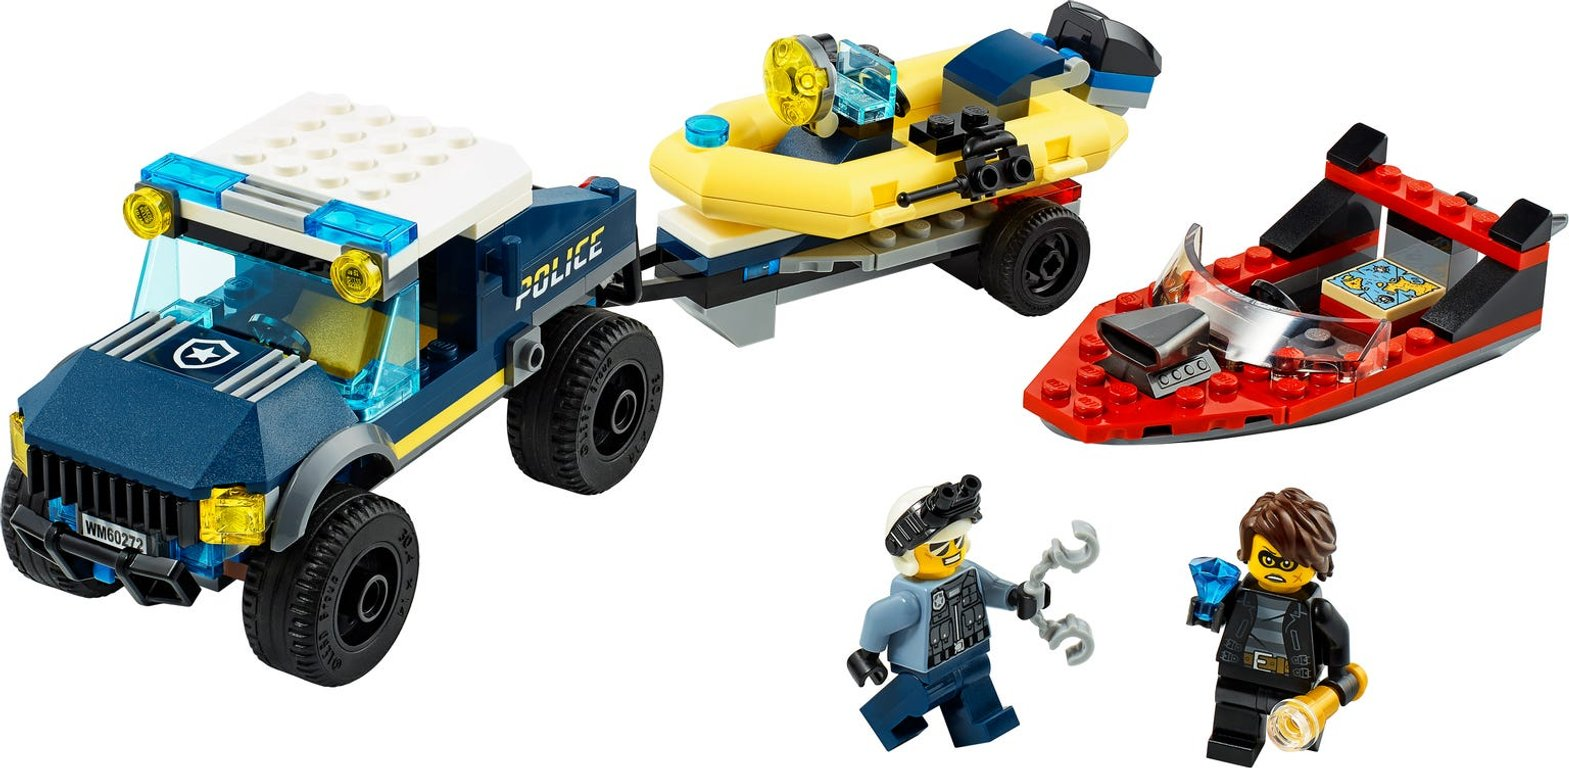 LEGO® City Police Boat Transport components